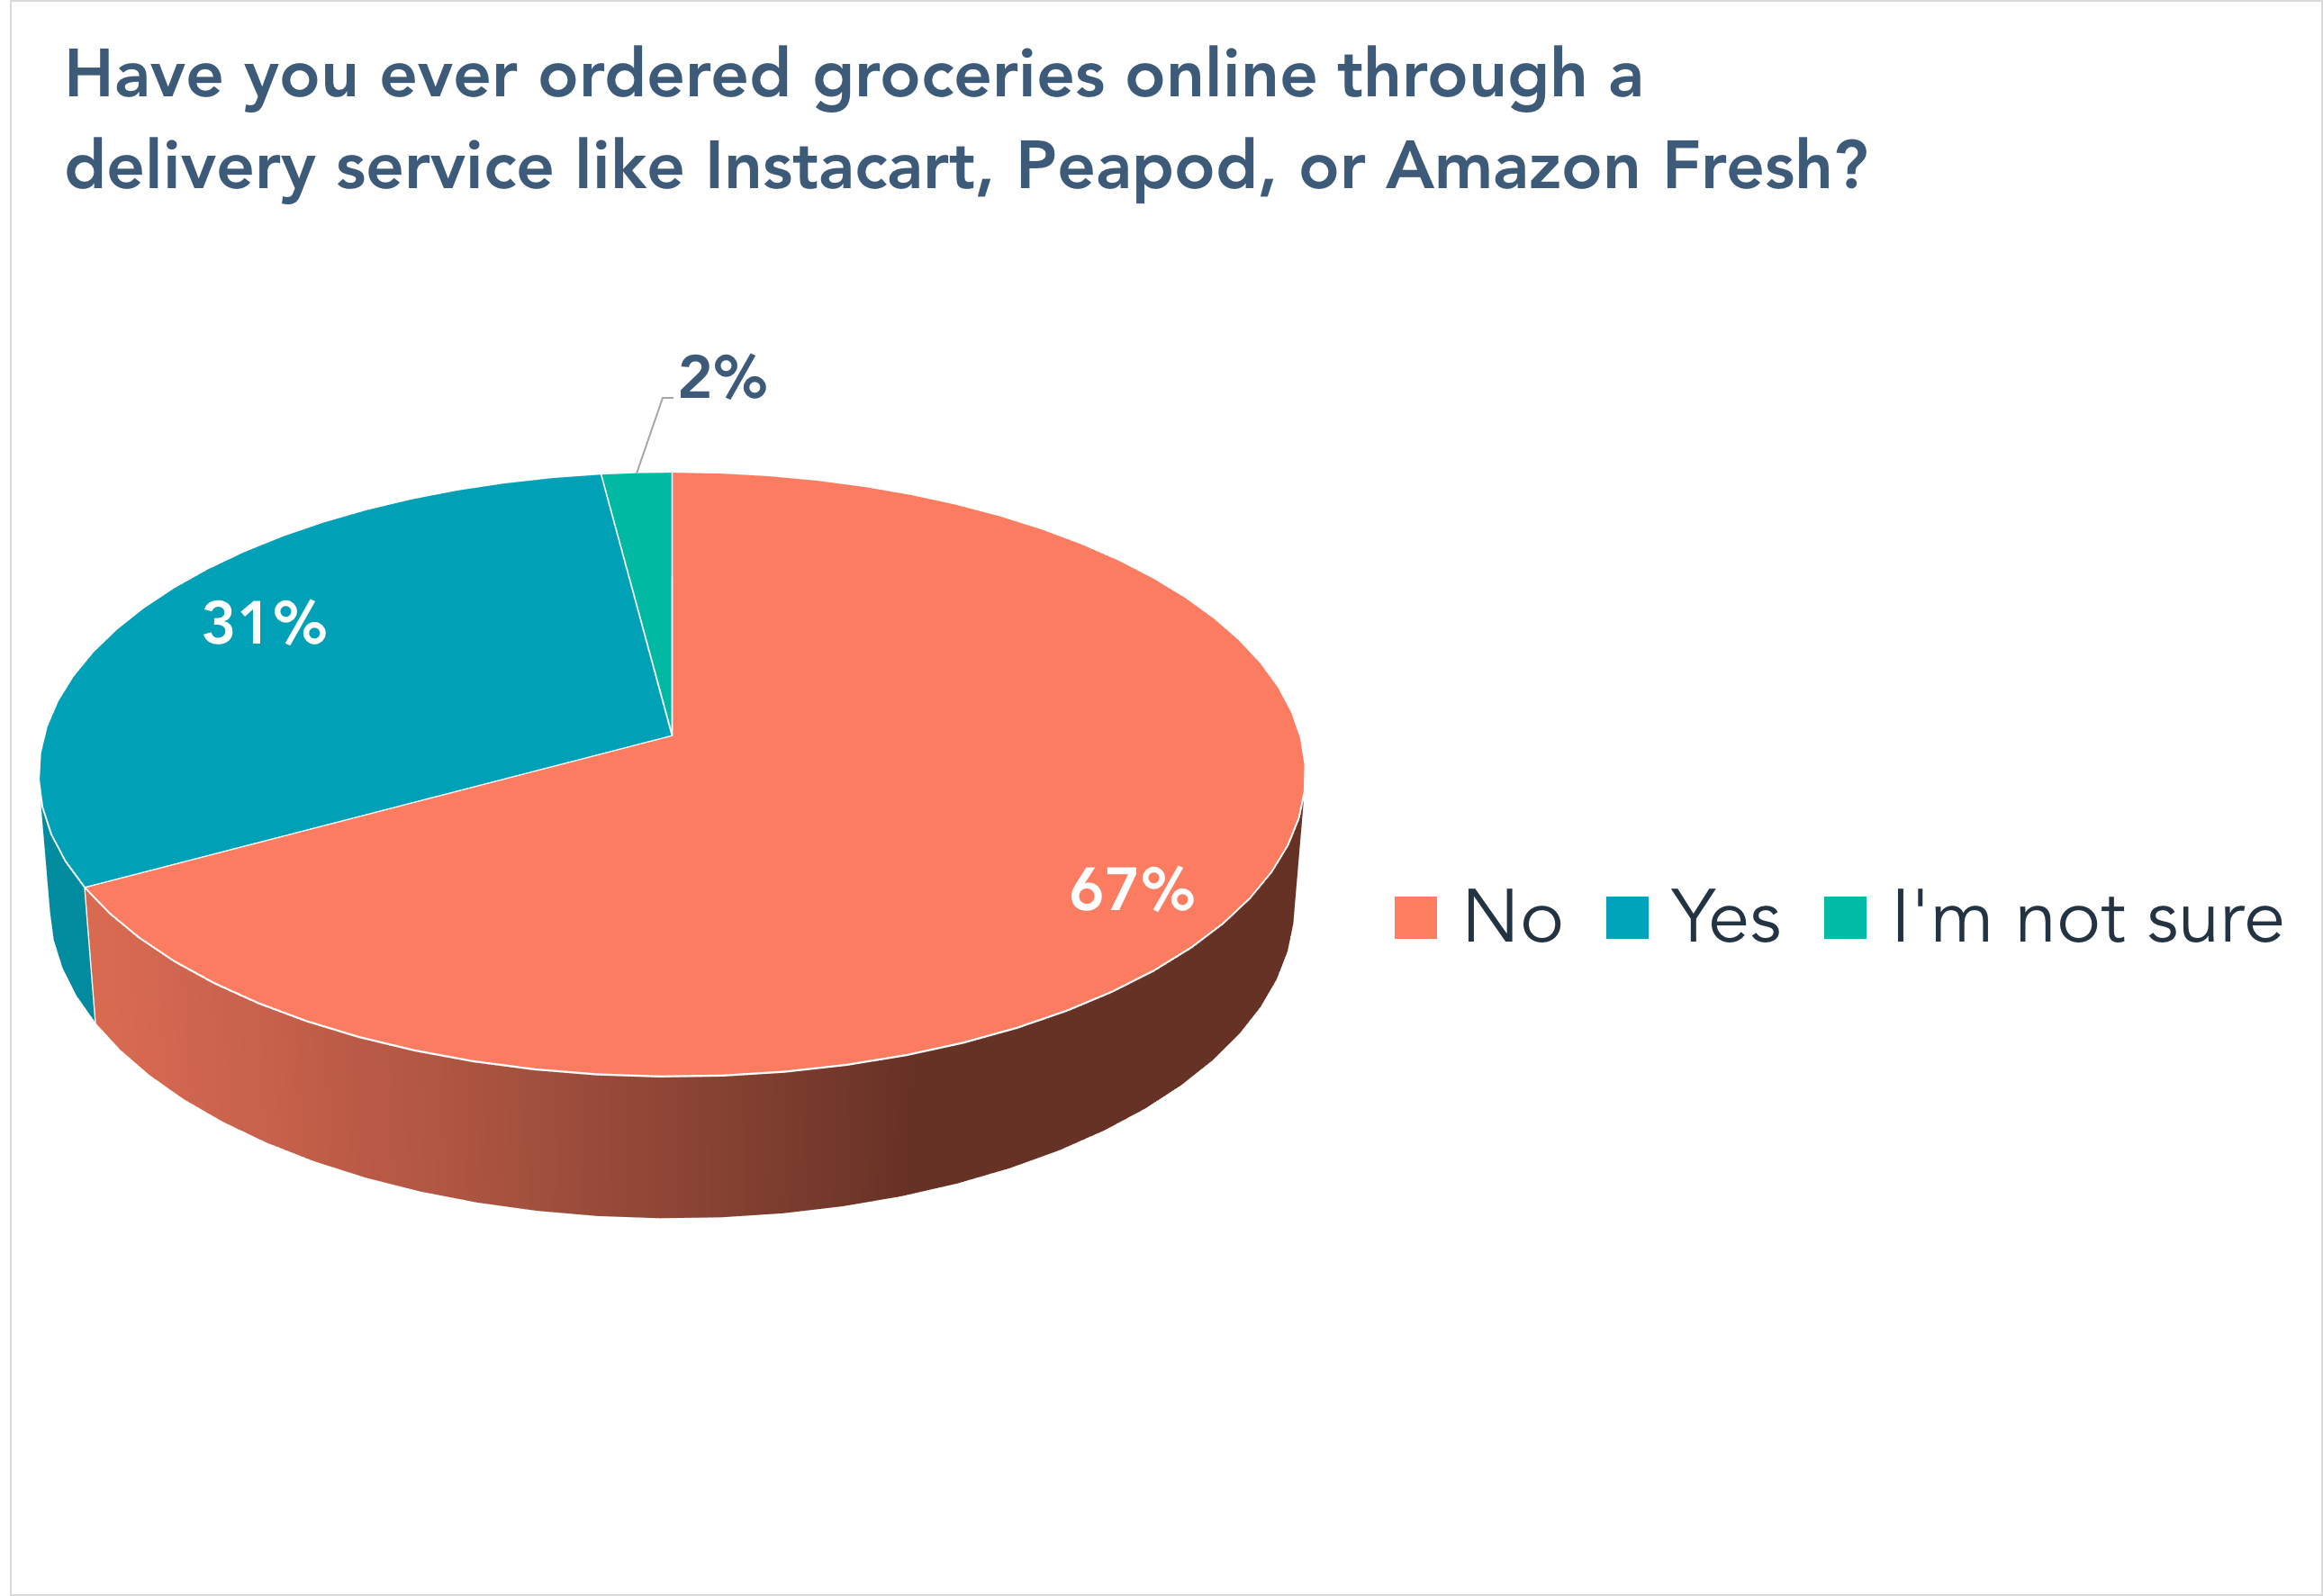 Have you ever ordered groceries online through a delivery service like Instacart, Peapod, or Amazon Fresh?